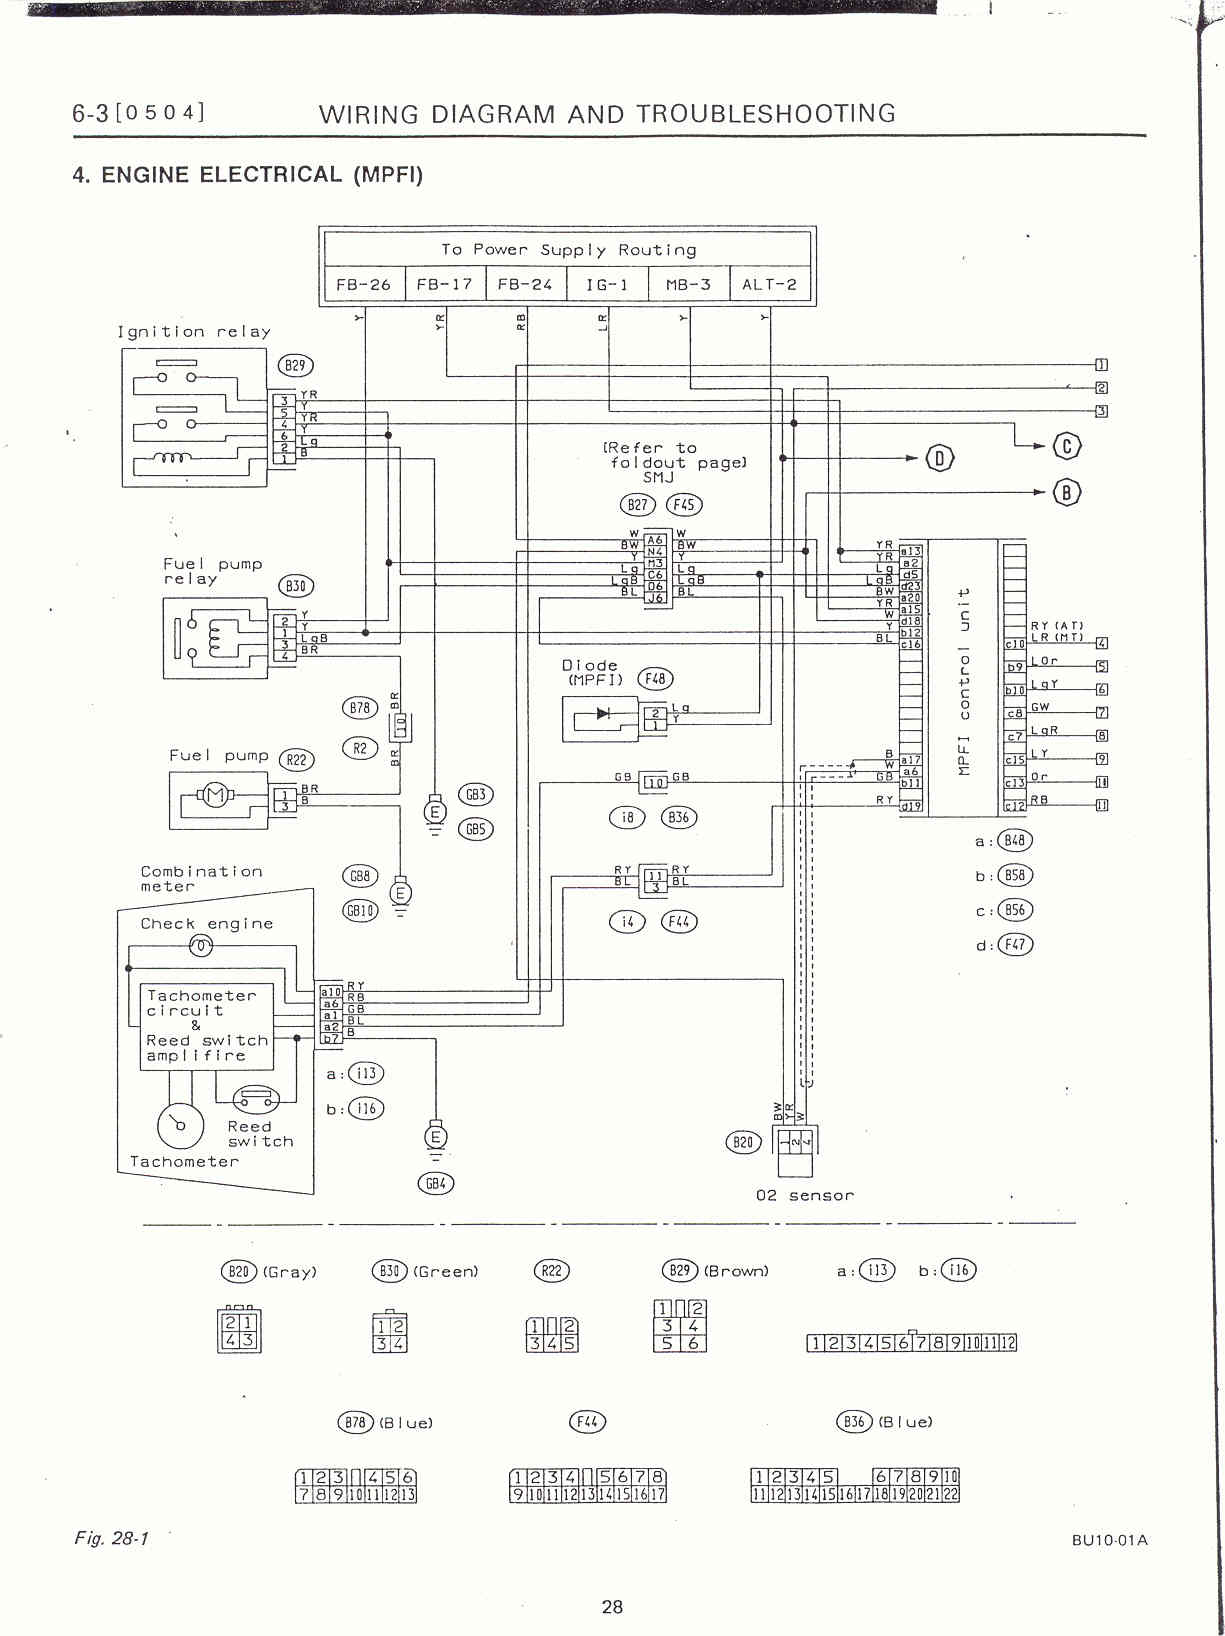 Surrealmirage Subaru Legacy Swap Electrical Info Notes Wiring Diagram As Well 3 Pin Plug On How To Wire A Engine Page 1